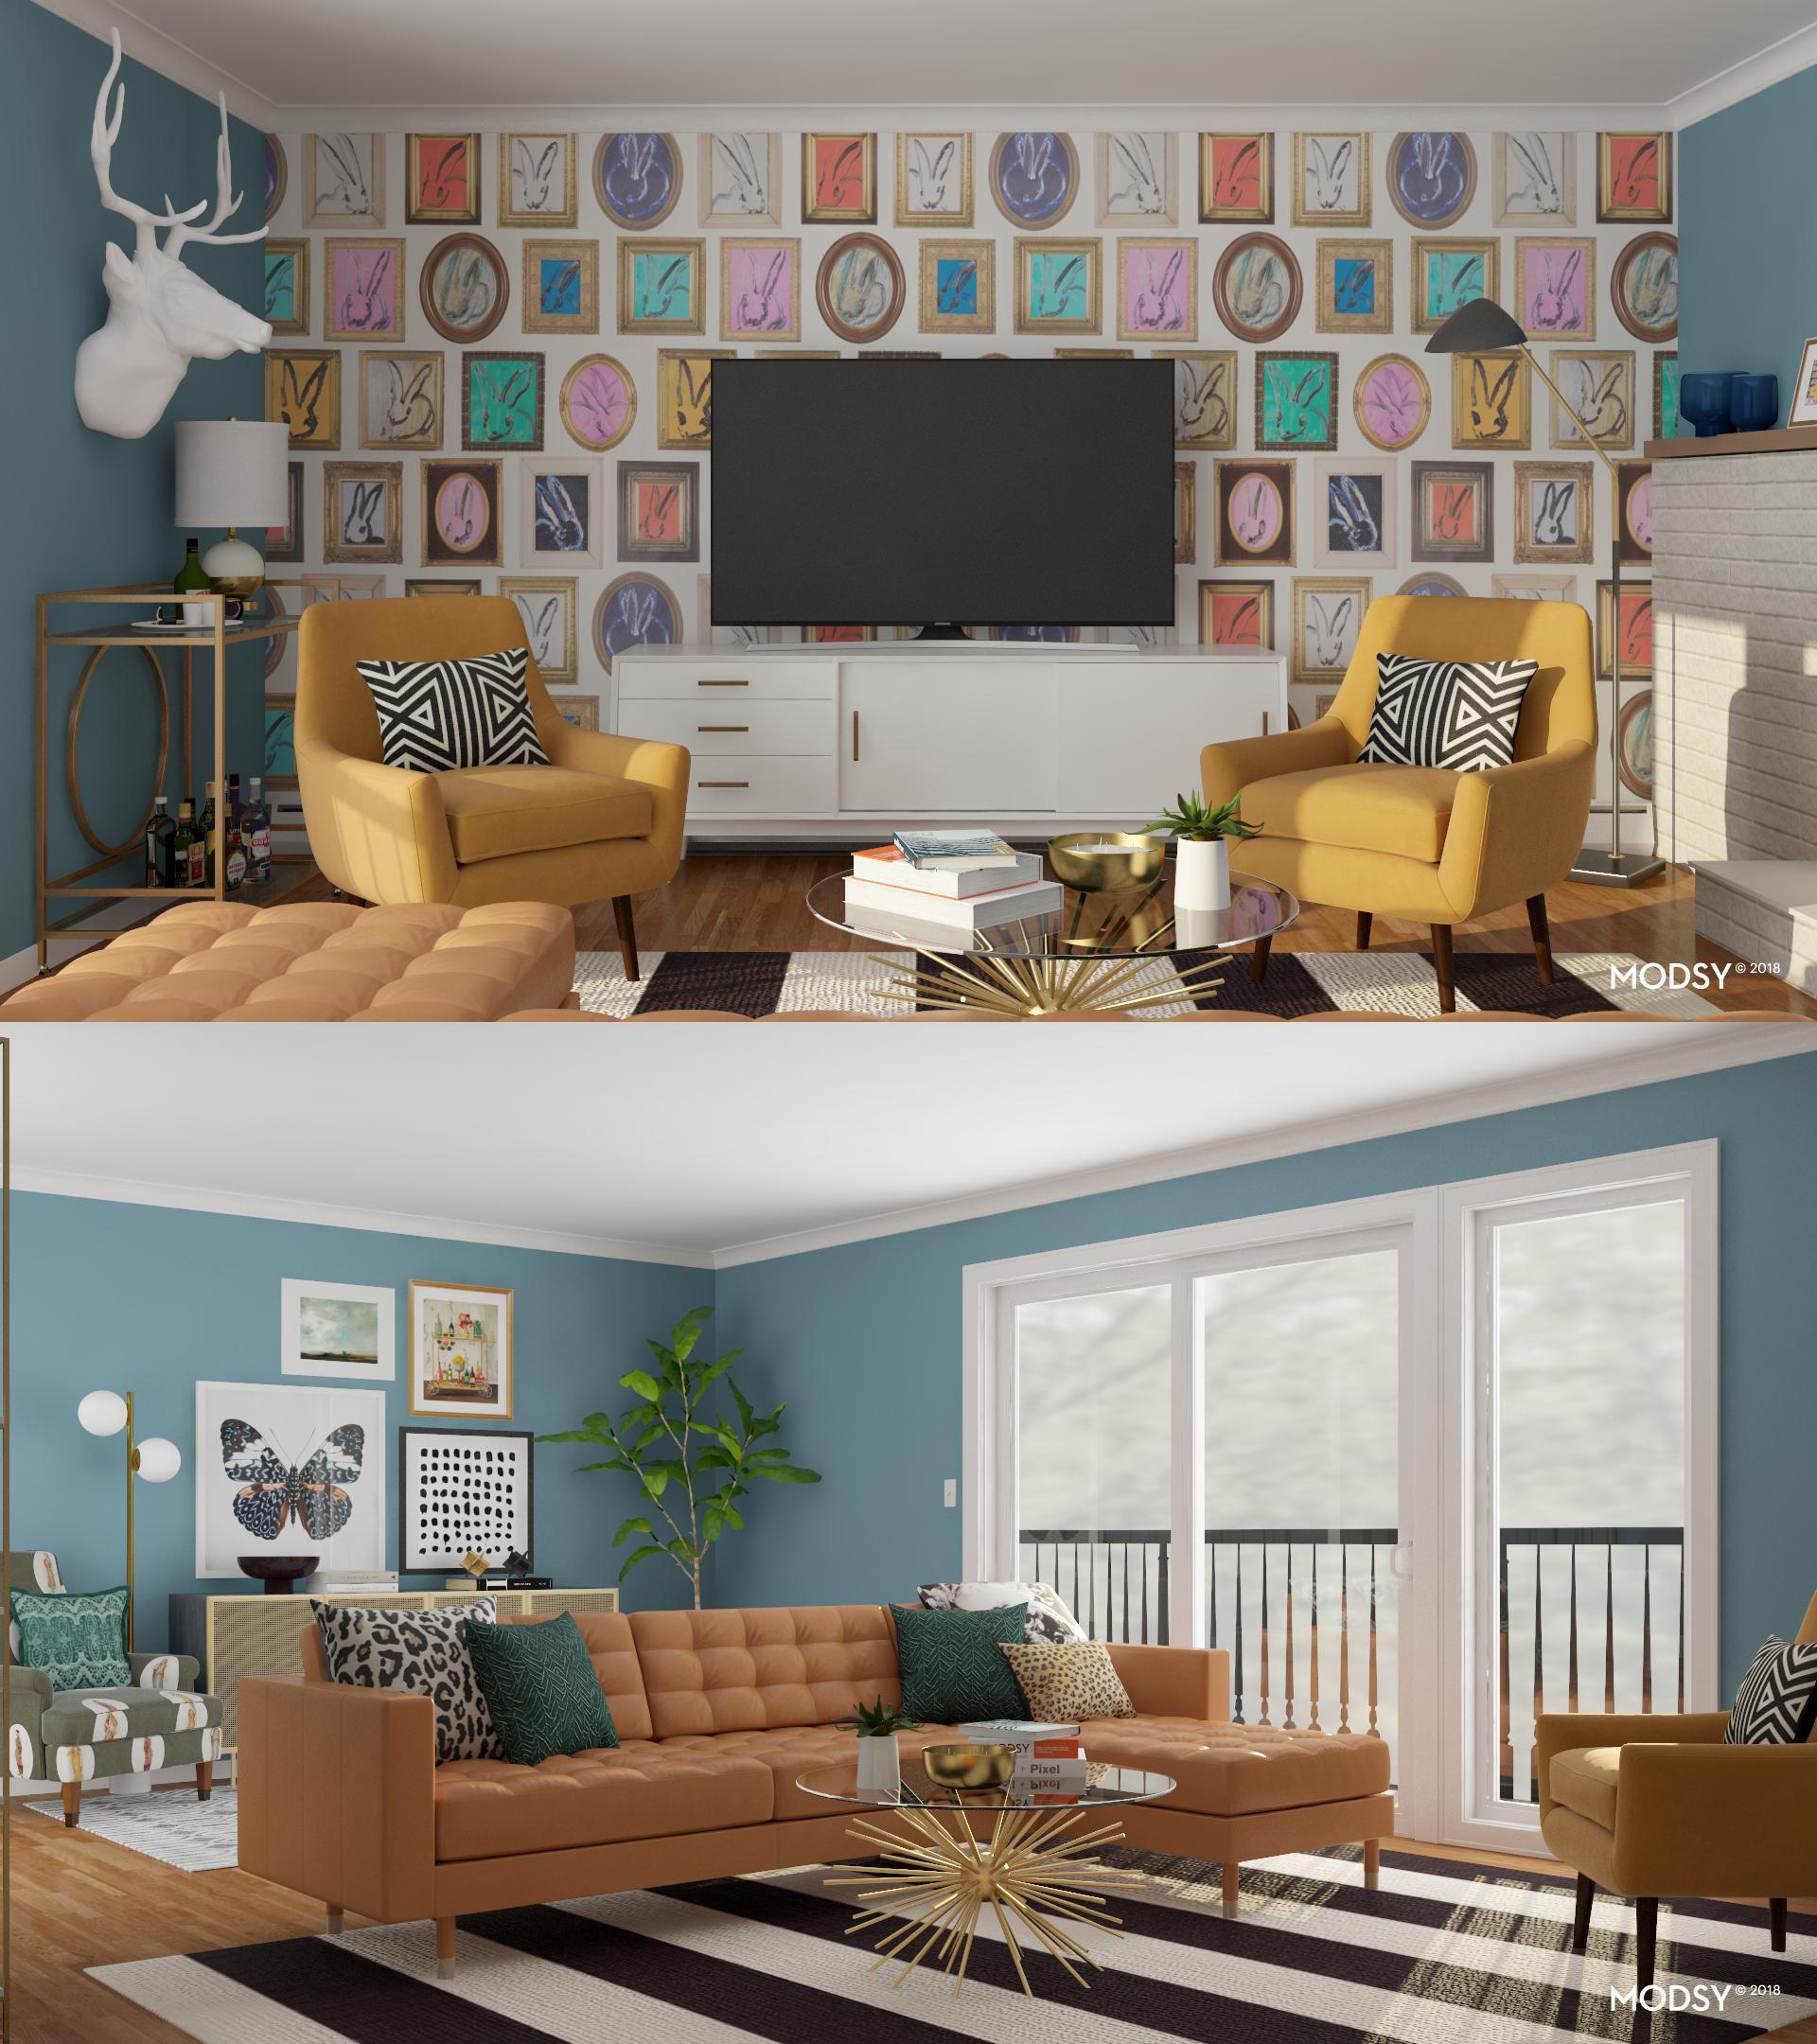 living room plan design colour trends 2019 plans for a mid mod eclectic pmq two what i like about the